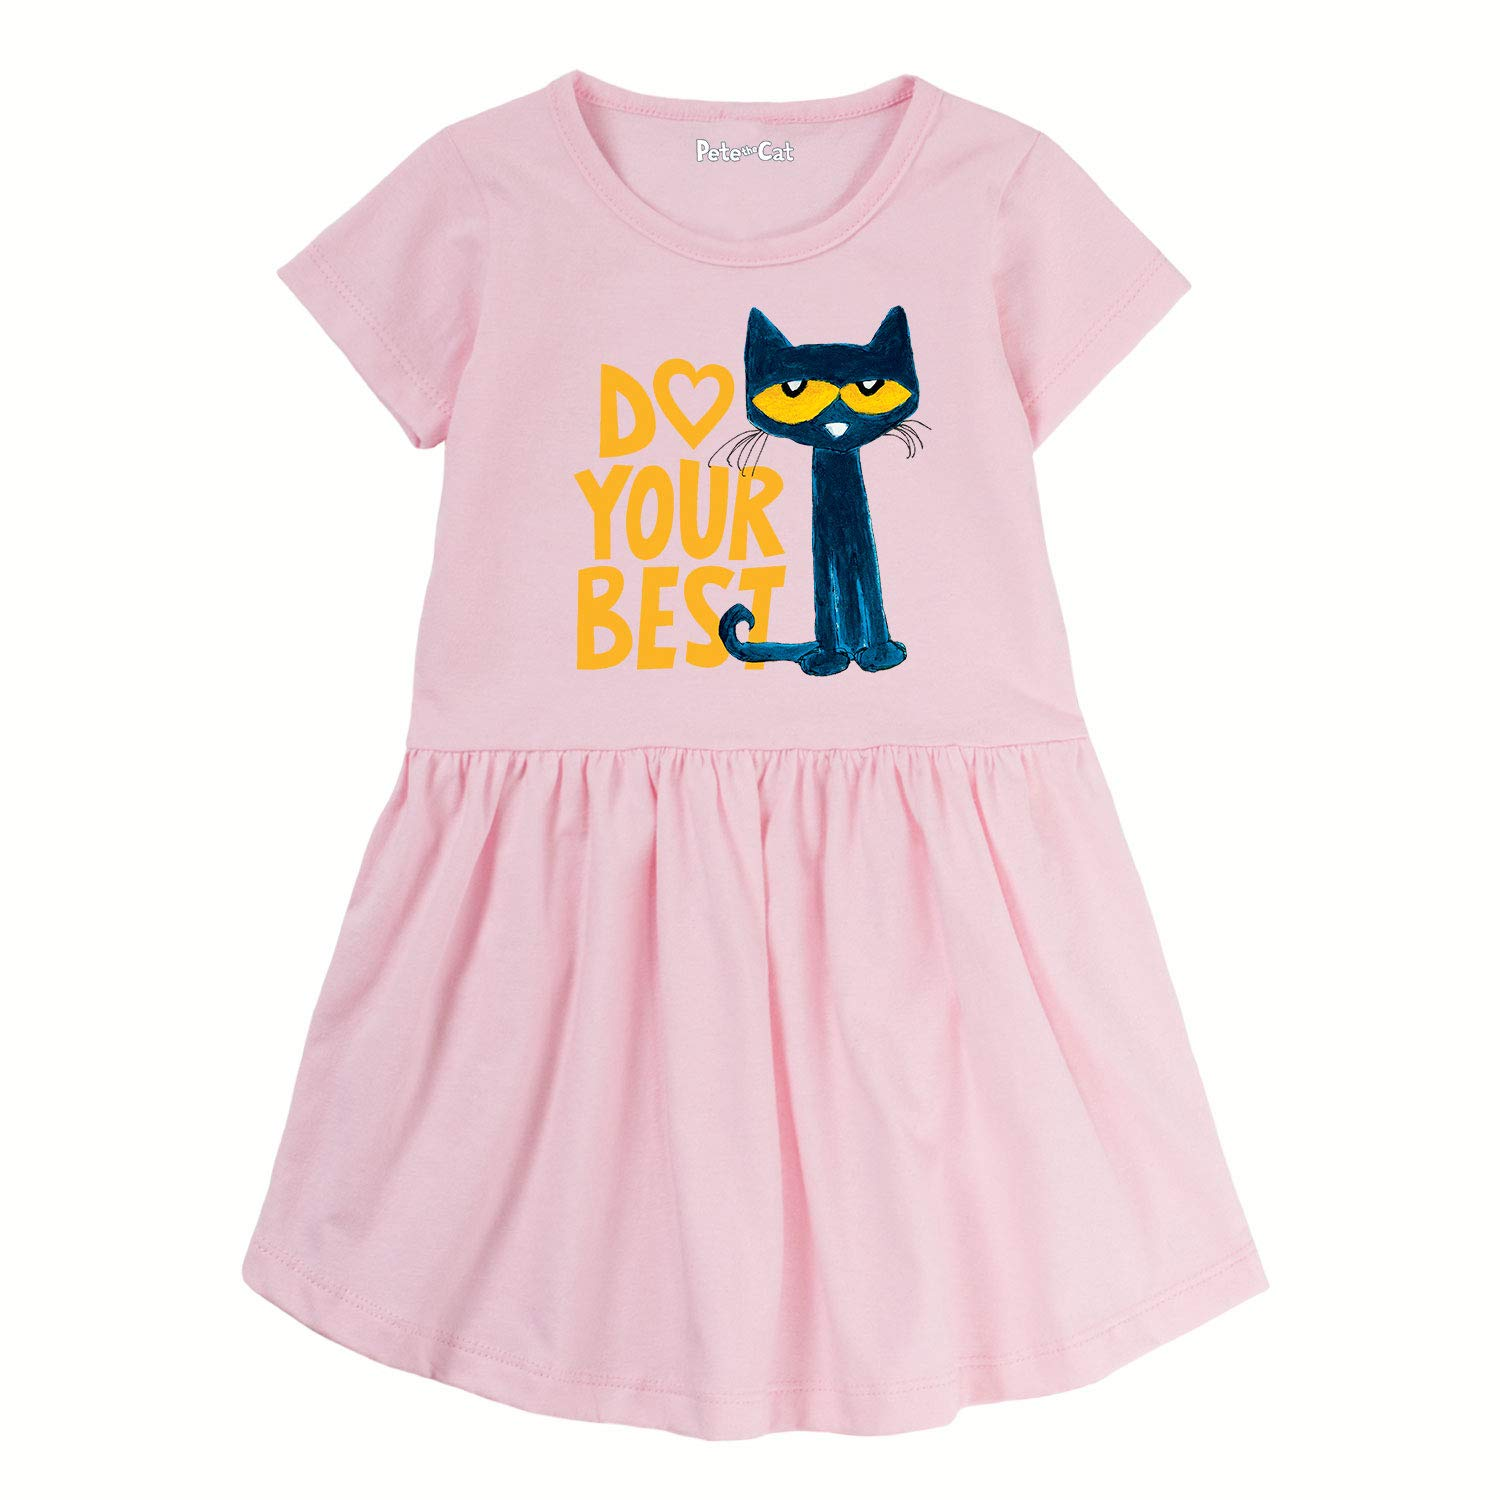 973c5ea6acd Amazon.com  Pete the Cat Do Your Best - Toddler Girl T-Shirt Dress  W Gathered Waist Light Pink  Clothing